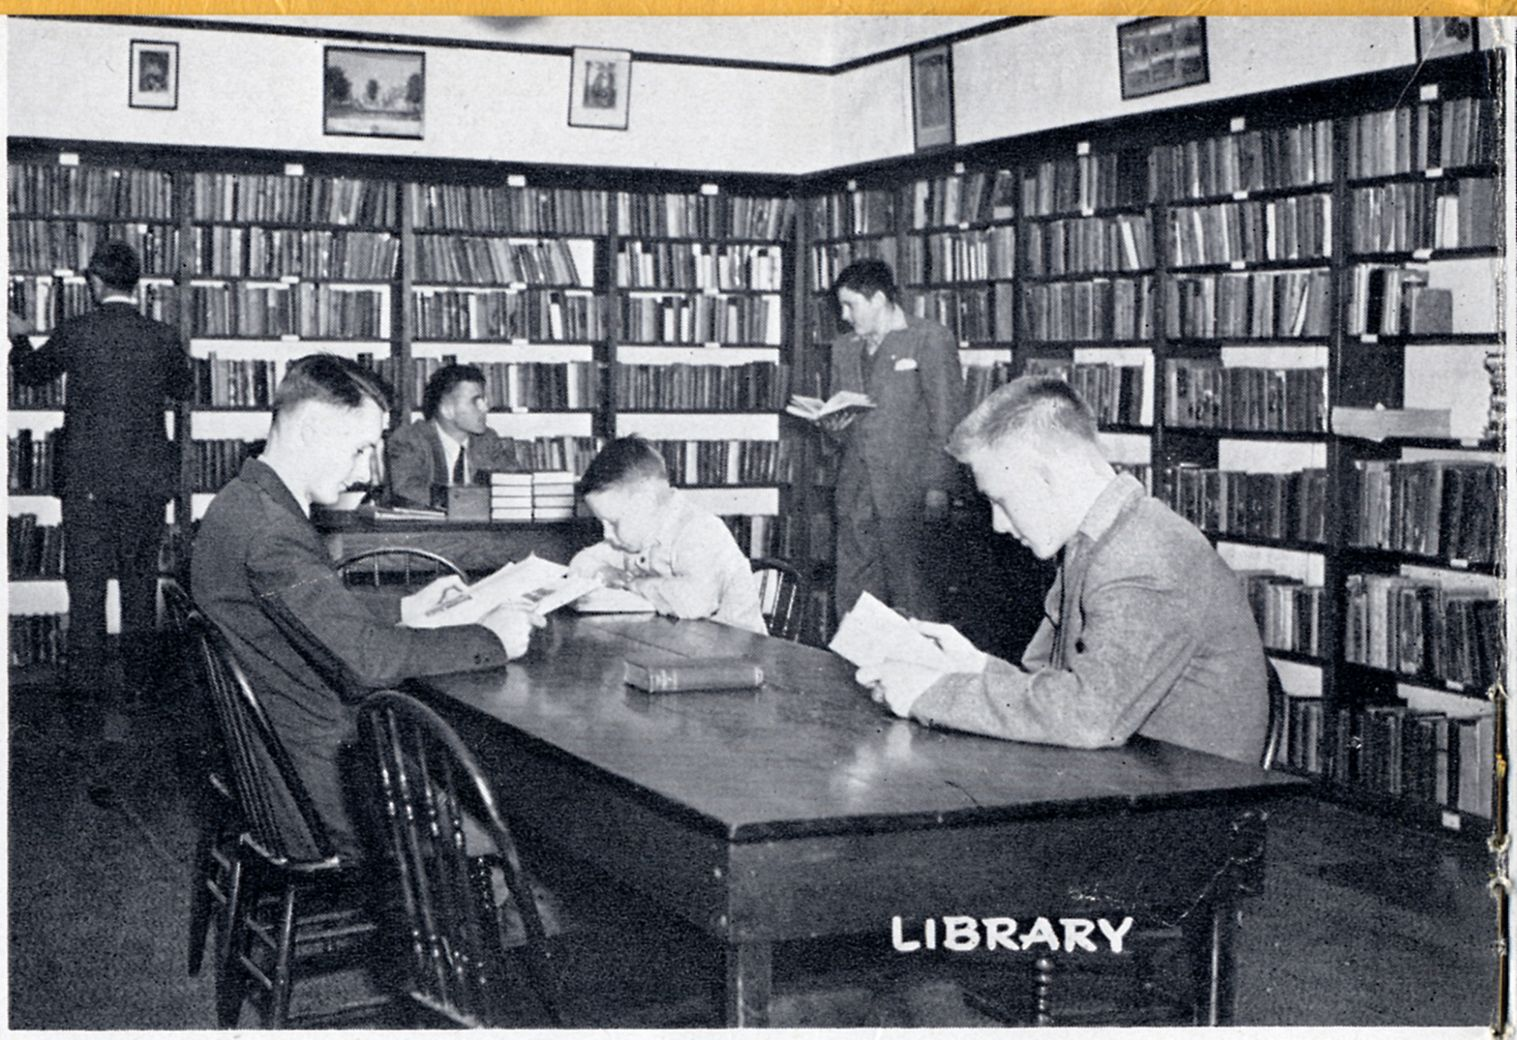 The library in 1948